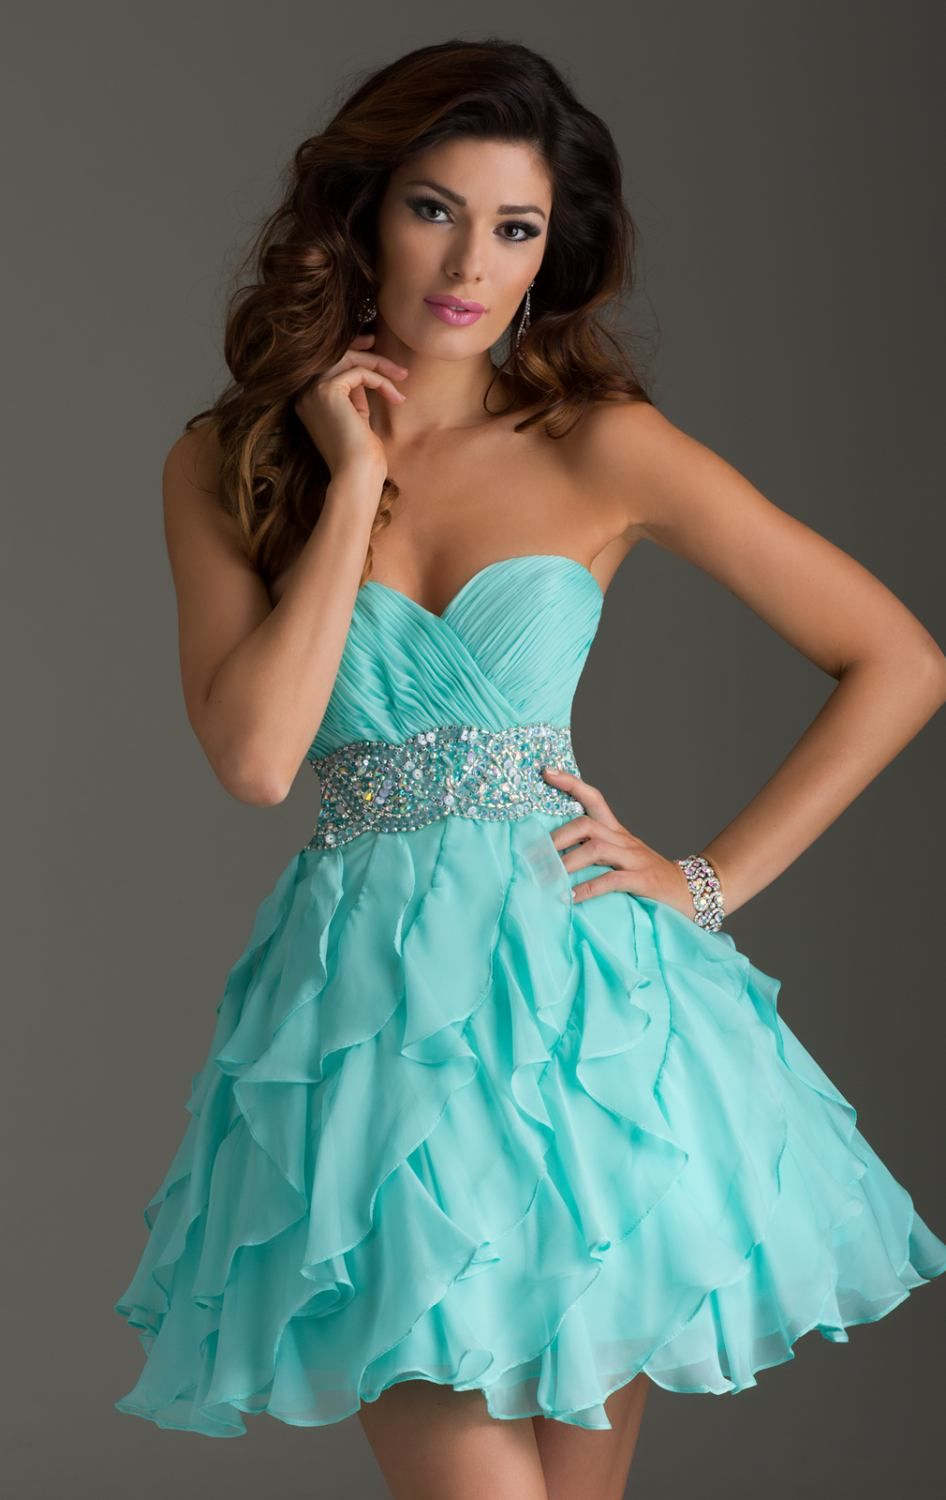 Clarisse 2460 by Clarisse | Dresses | Pinterest | Prom, Homecoming ...